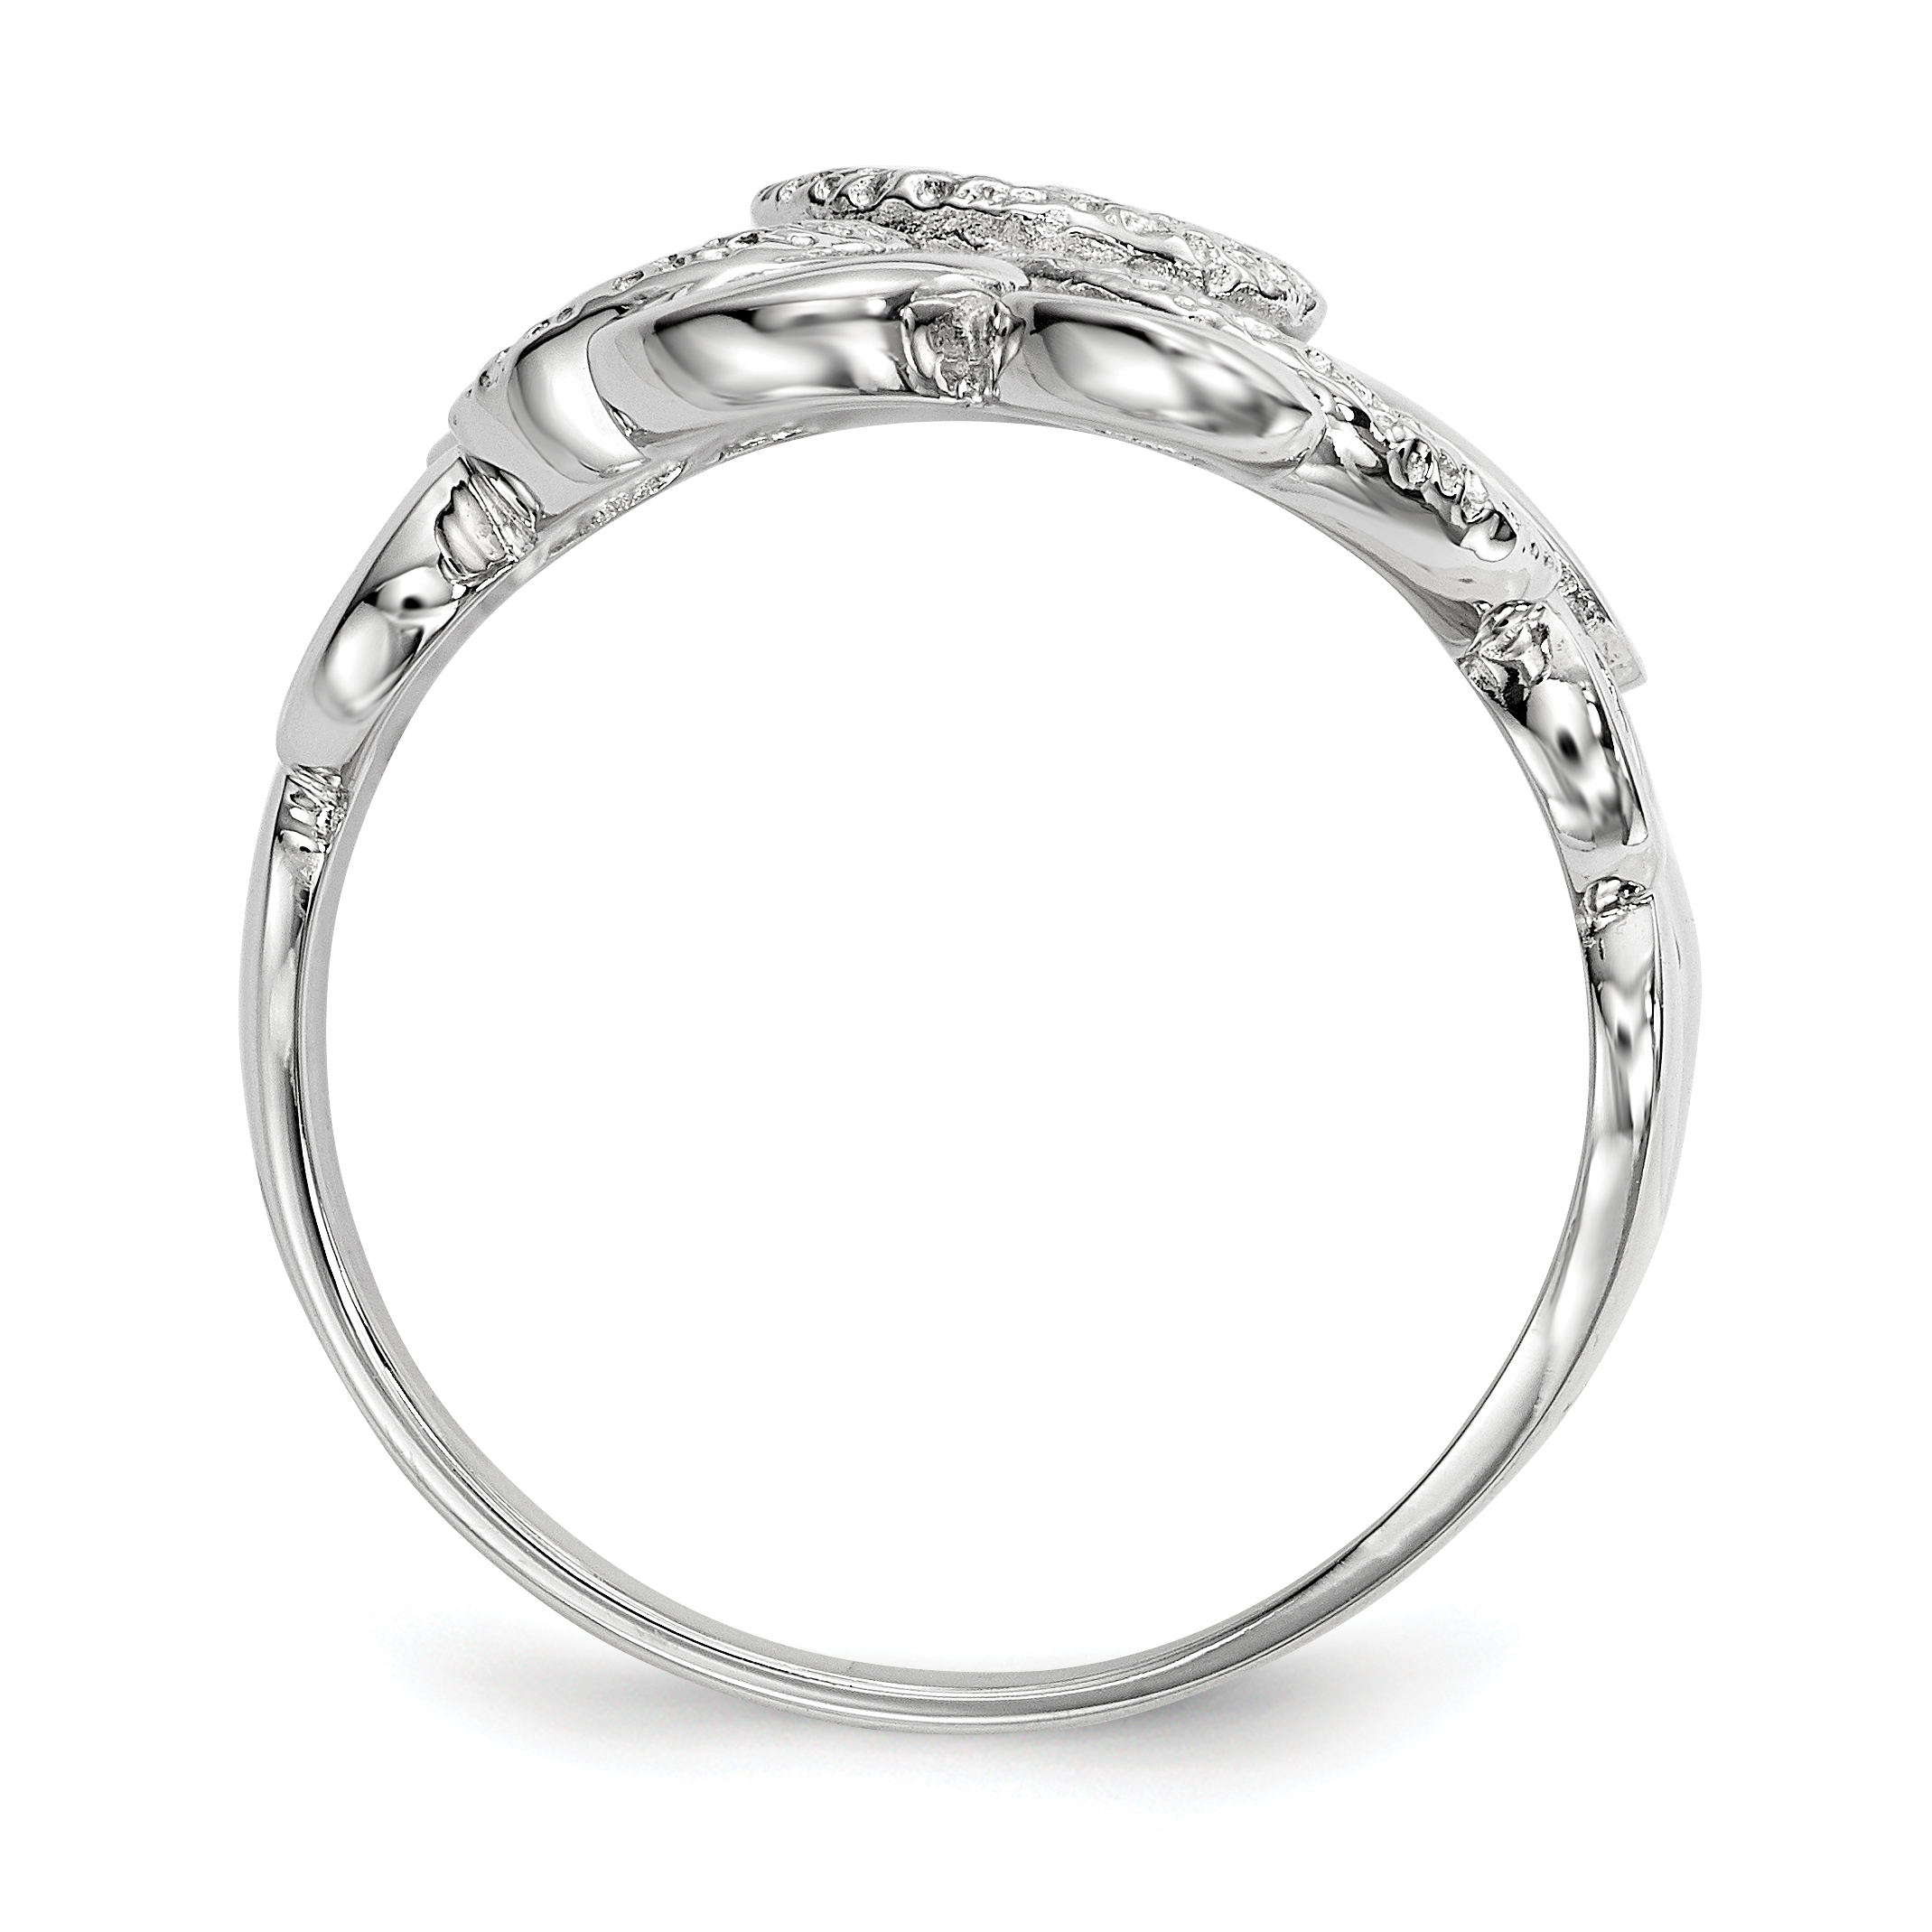 925 Sterling Silver Textured Circles Band Ring Size 7.00 Fine Jewelry Gifts For Women For Her - image 1 de 4